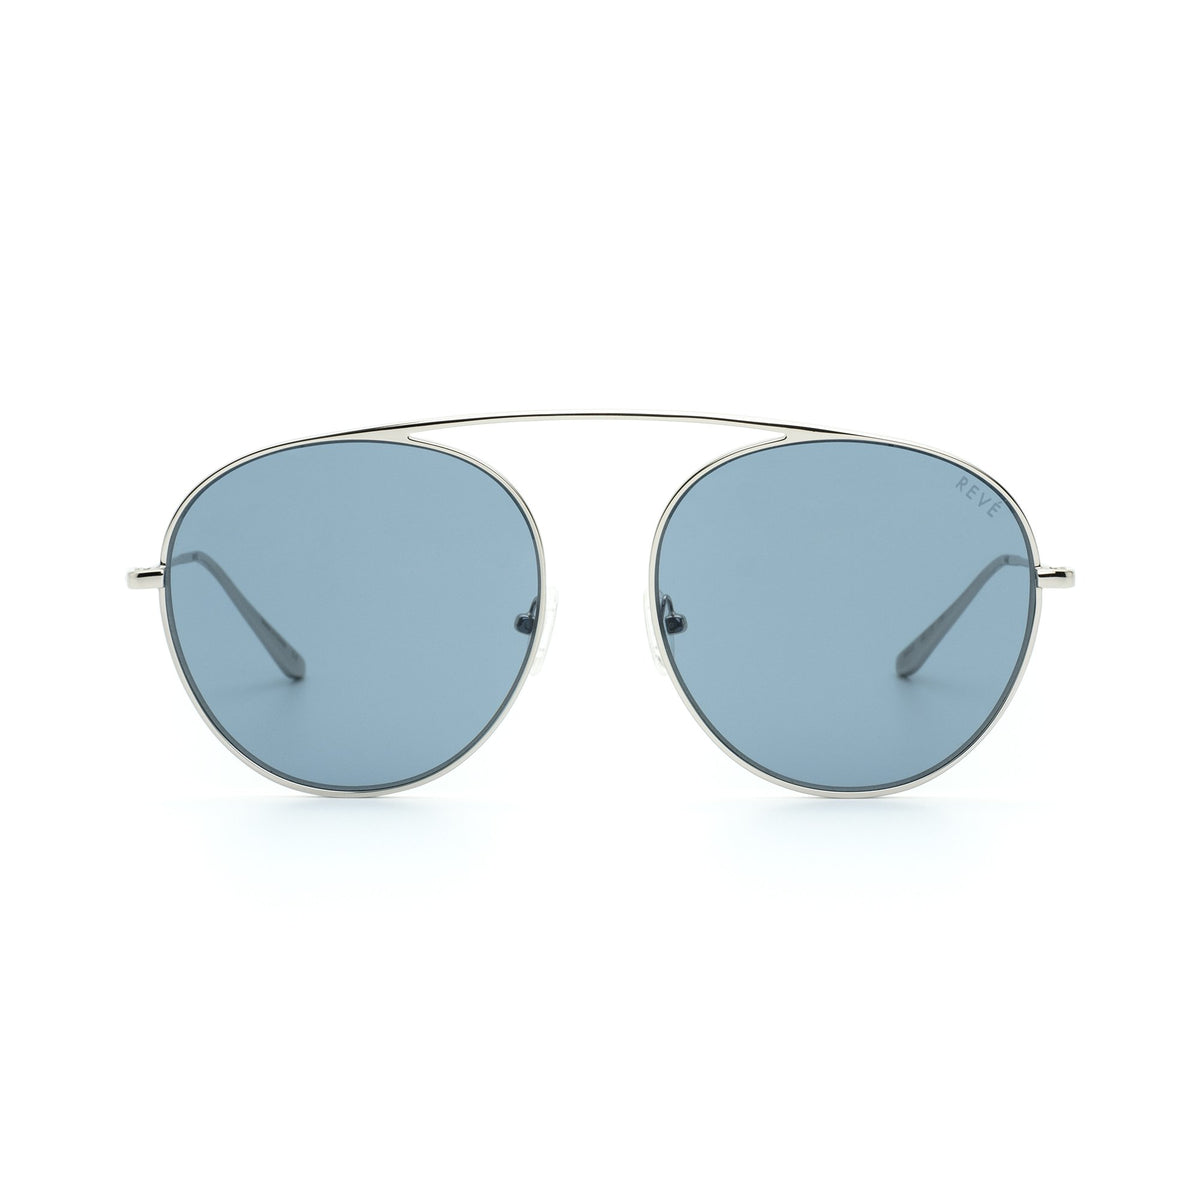 4AM | Dark Aquamarine Blue | Aviator Sunglasses - Asian Fit